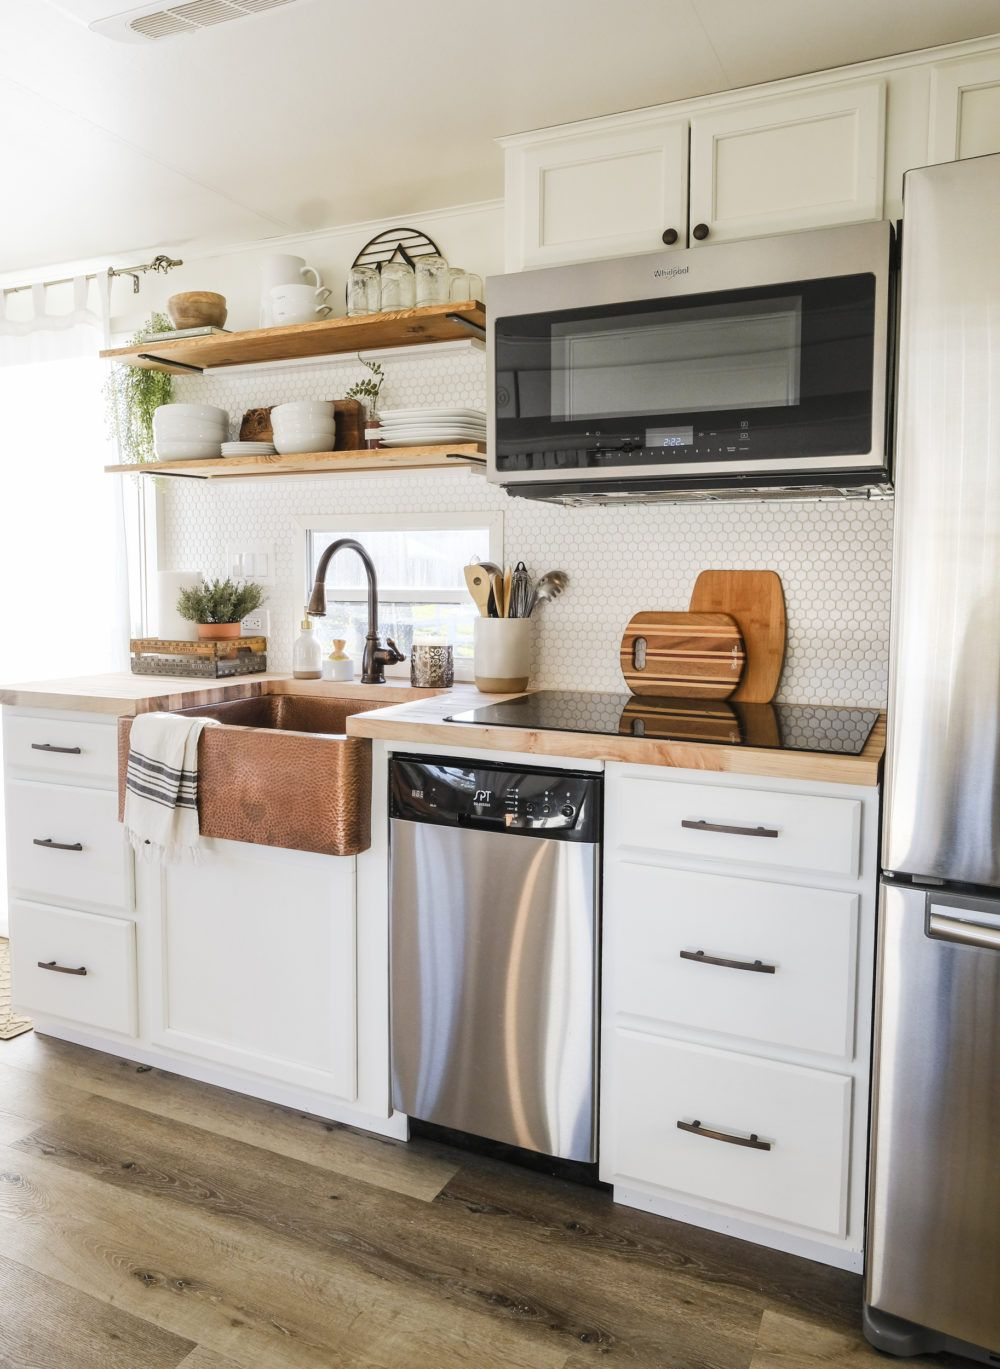 Rv Kitchen Remodel New Cabinets Sink Before And After Rv Kitchen Remodel Kitchen Layout Small Kitchen Decor